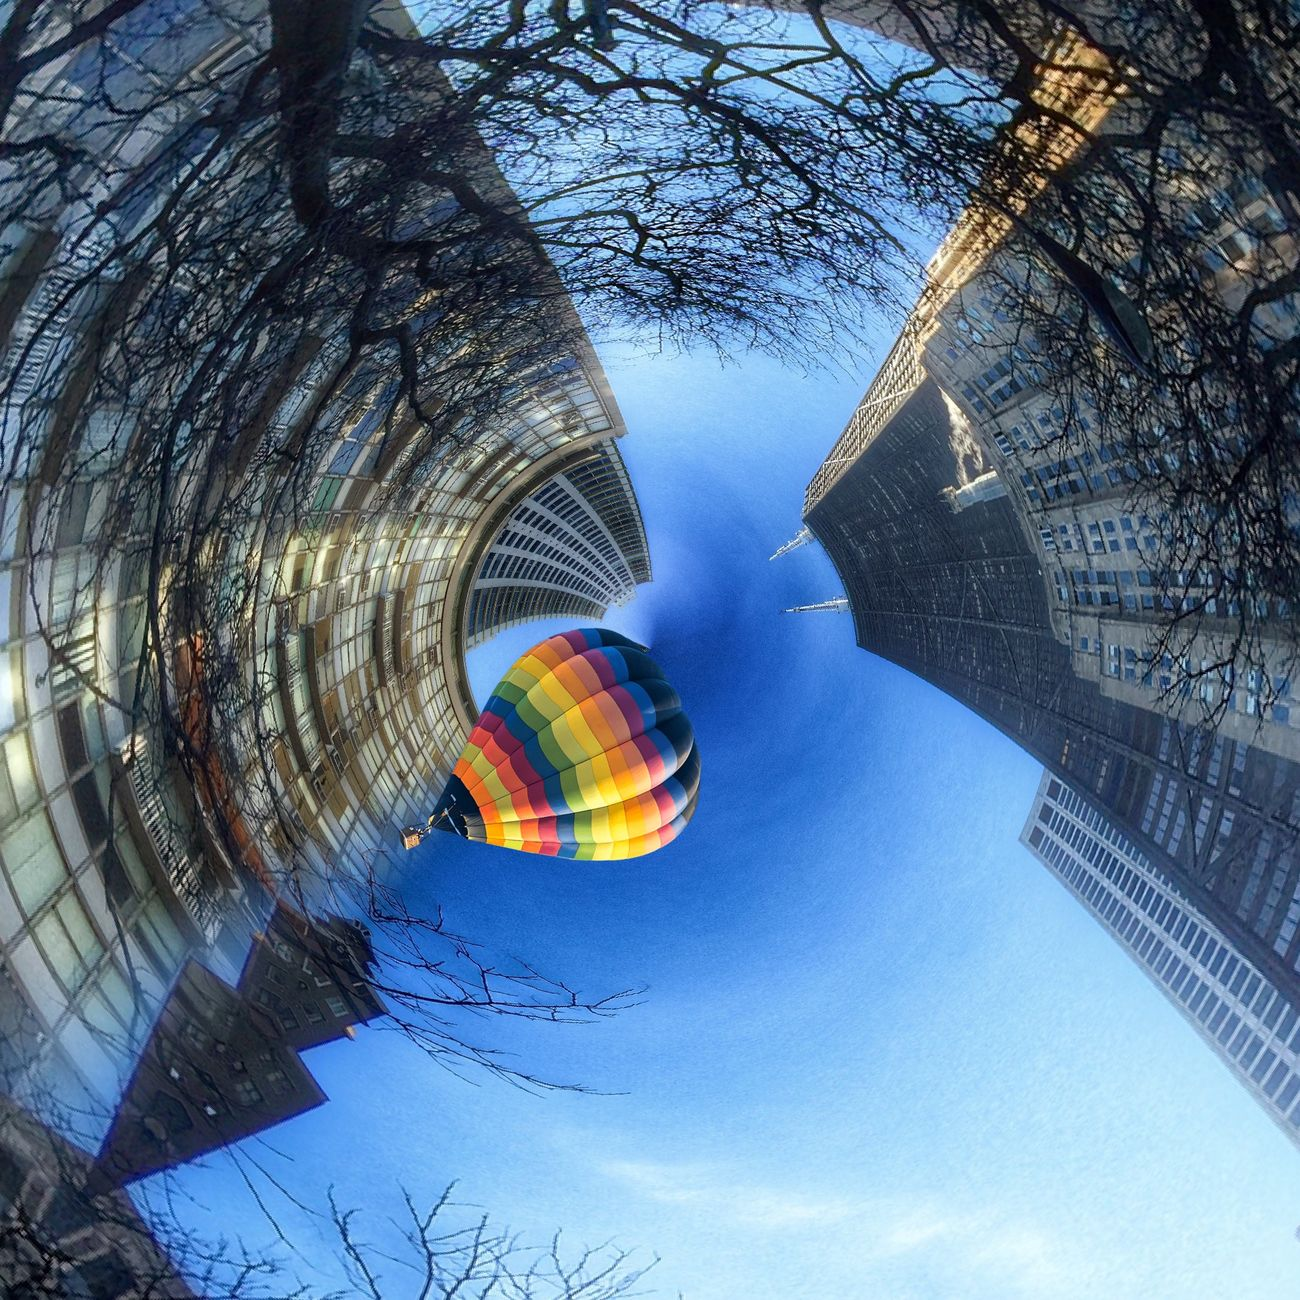 😳From my point of view🙄 From My Point Of View Tinyshutter Tinyplanet Tinyplanets Circular Chicago Architecture ChiTown Skyscrapers Iphoneonly Iphonephotography